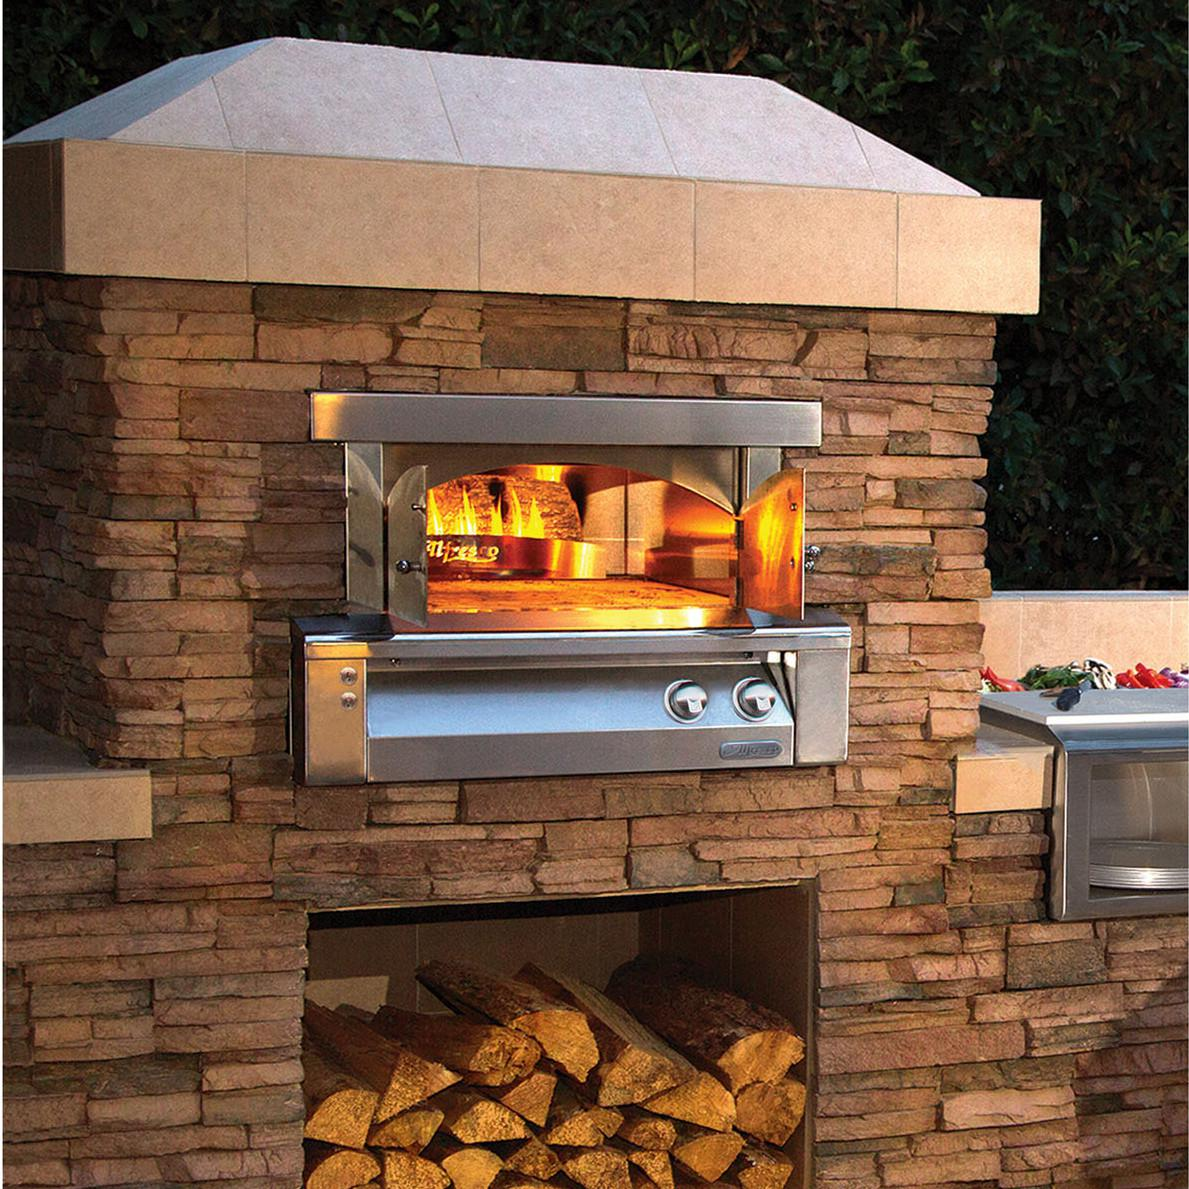 Alfresco 30-Inch Built-In Propane Gas Outdoor Pizza Oven